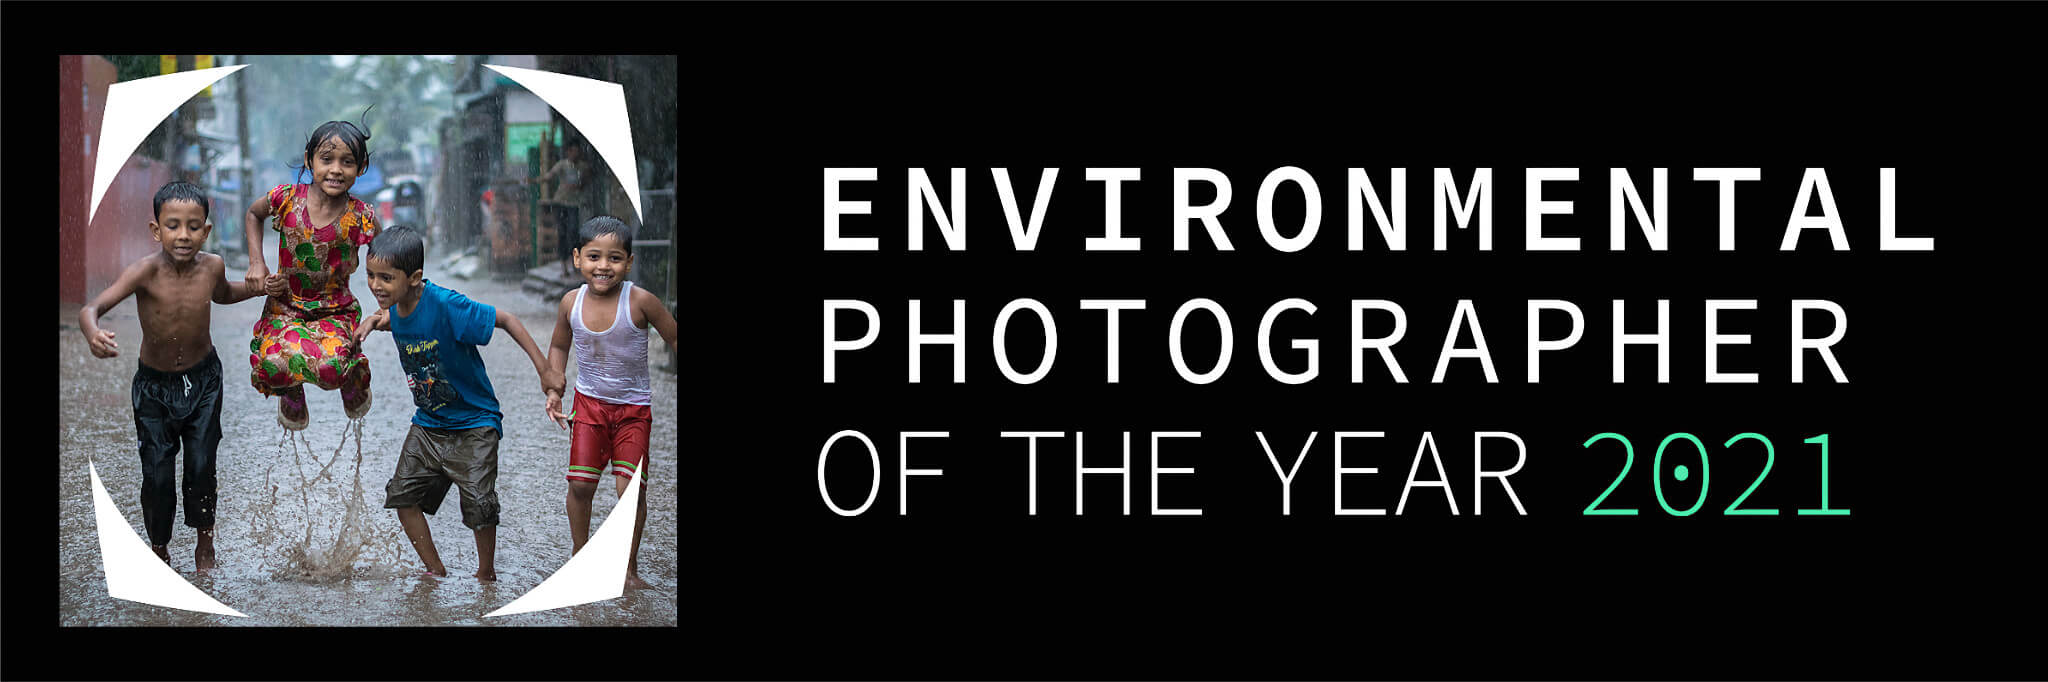 Soutěž Environmental Photographer Of The Year také s Nikonem